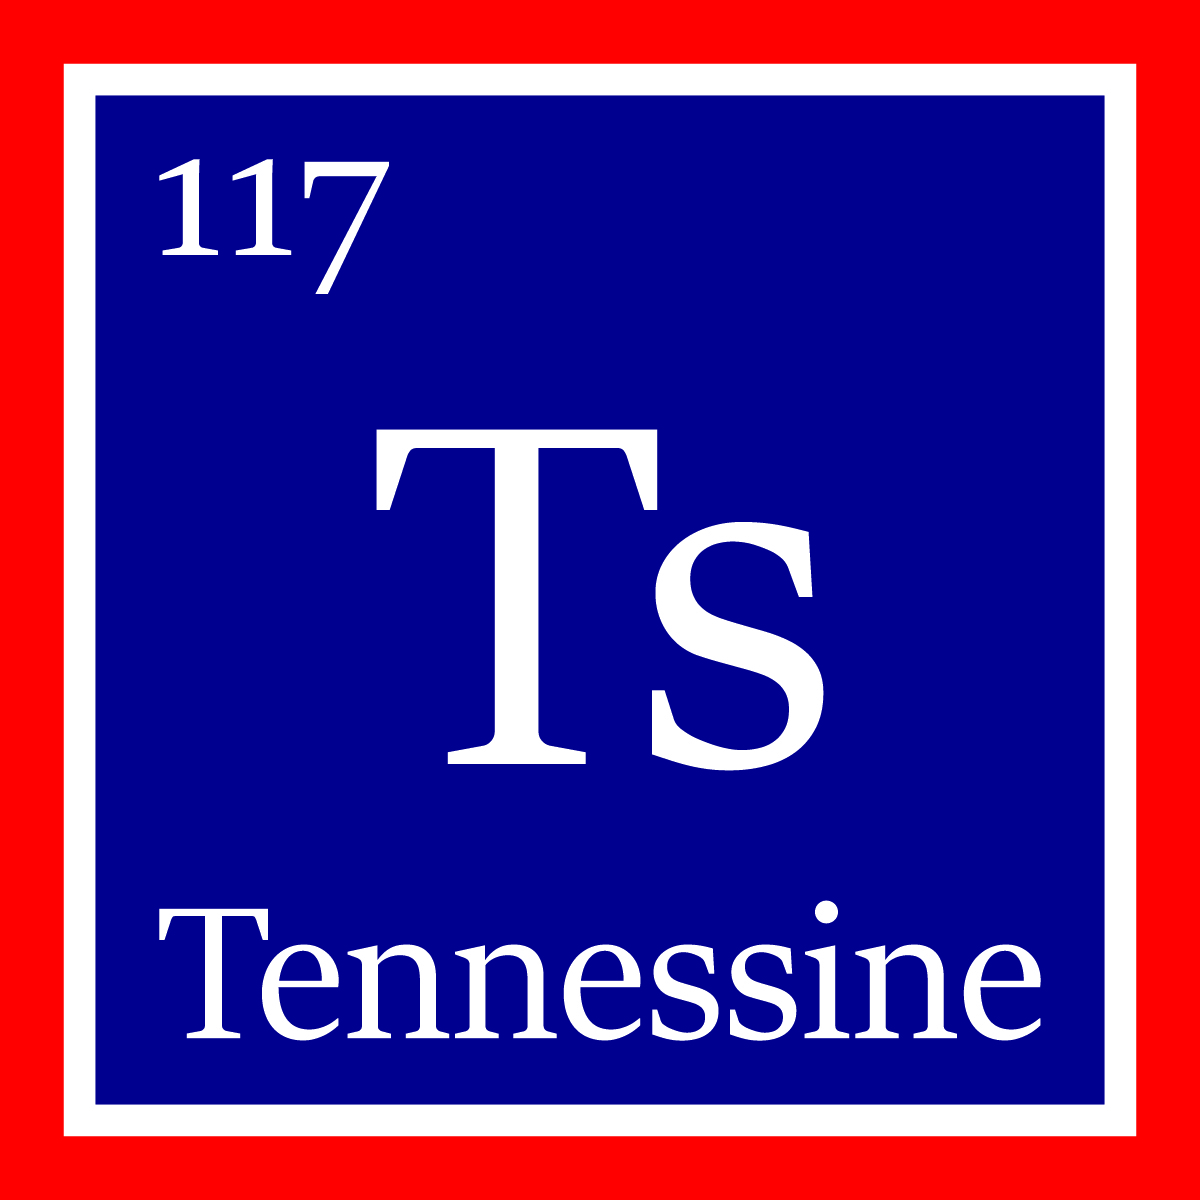 'Tennessine': Element 117 officially named